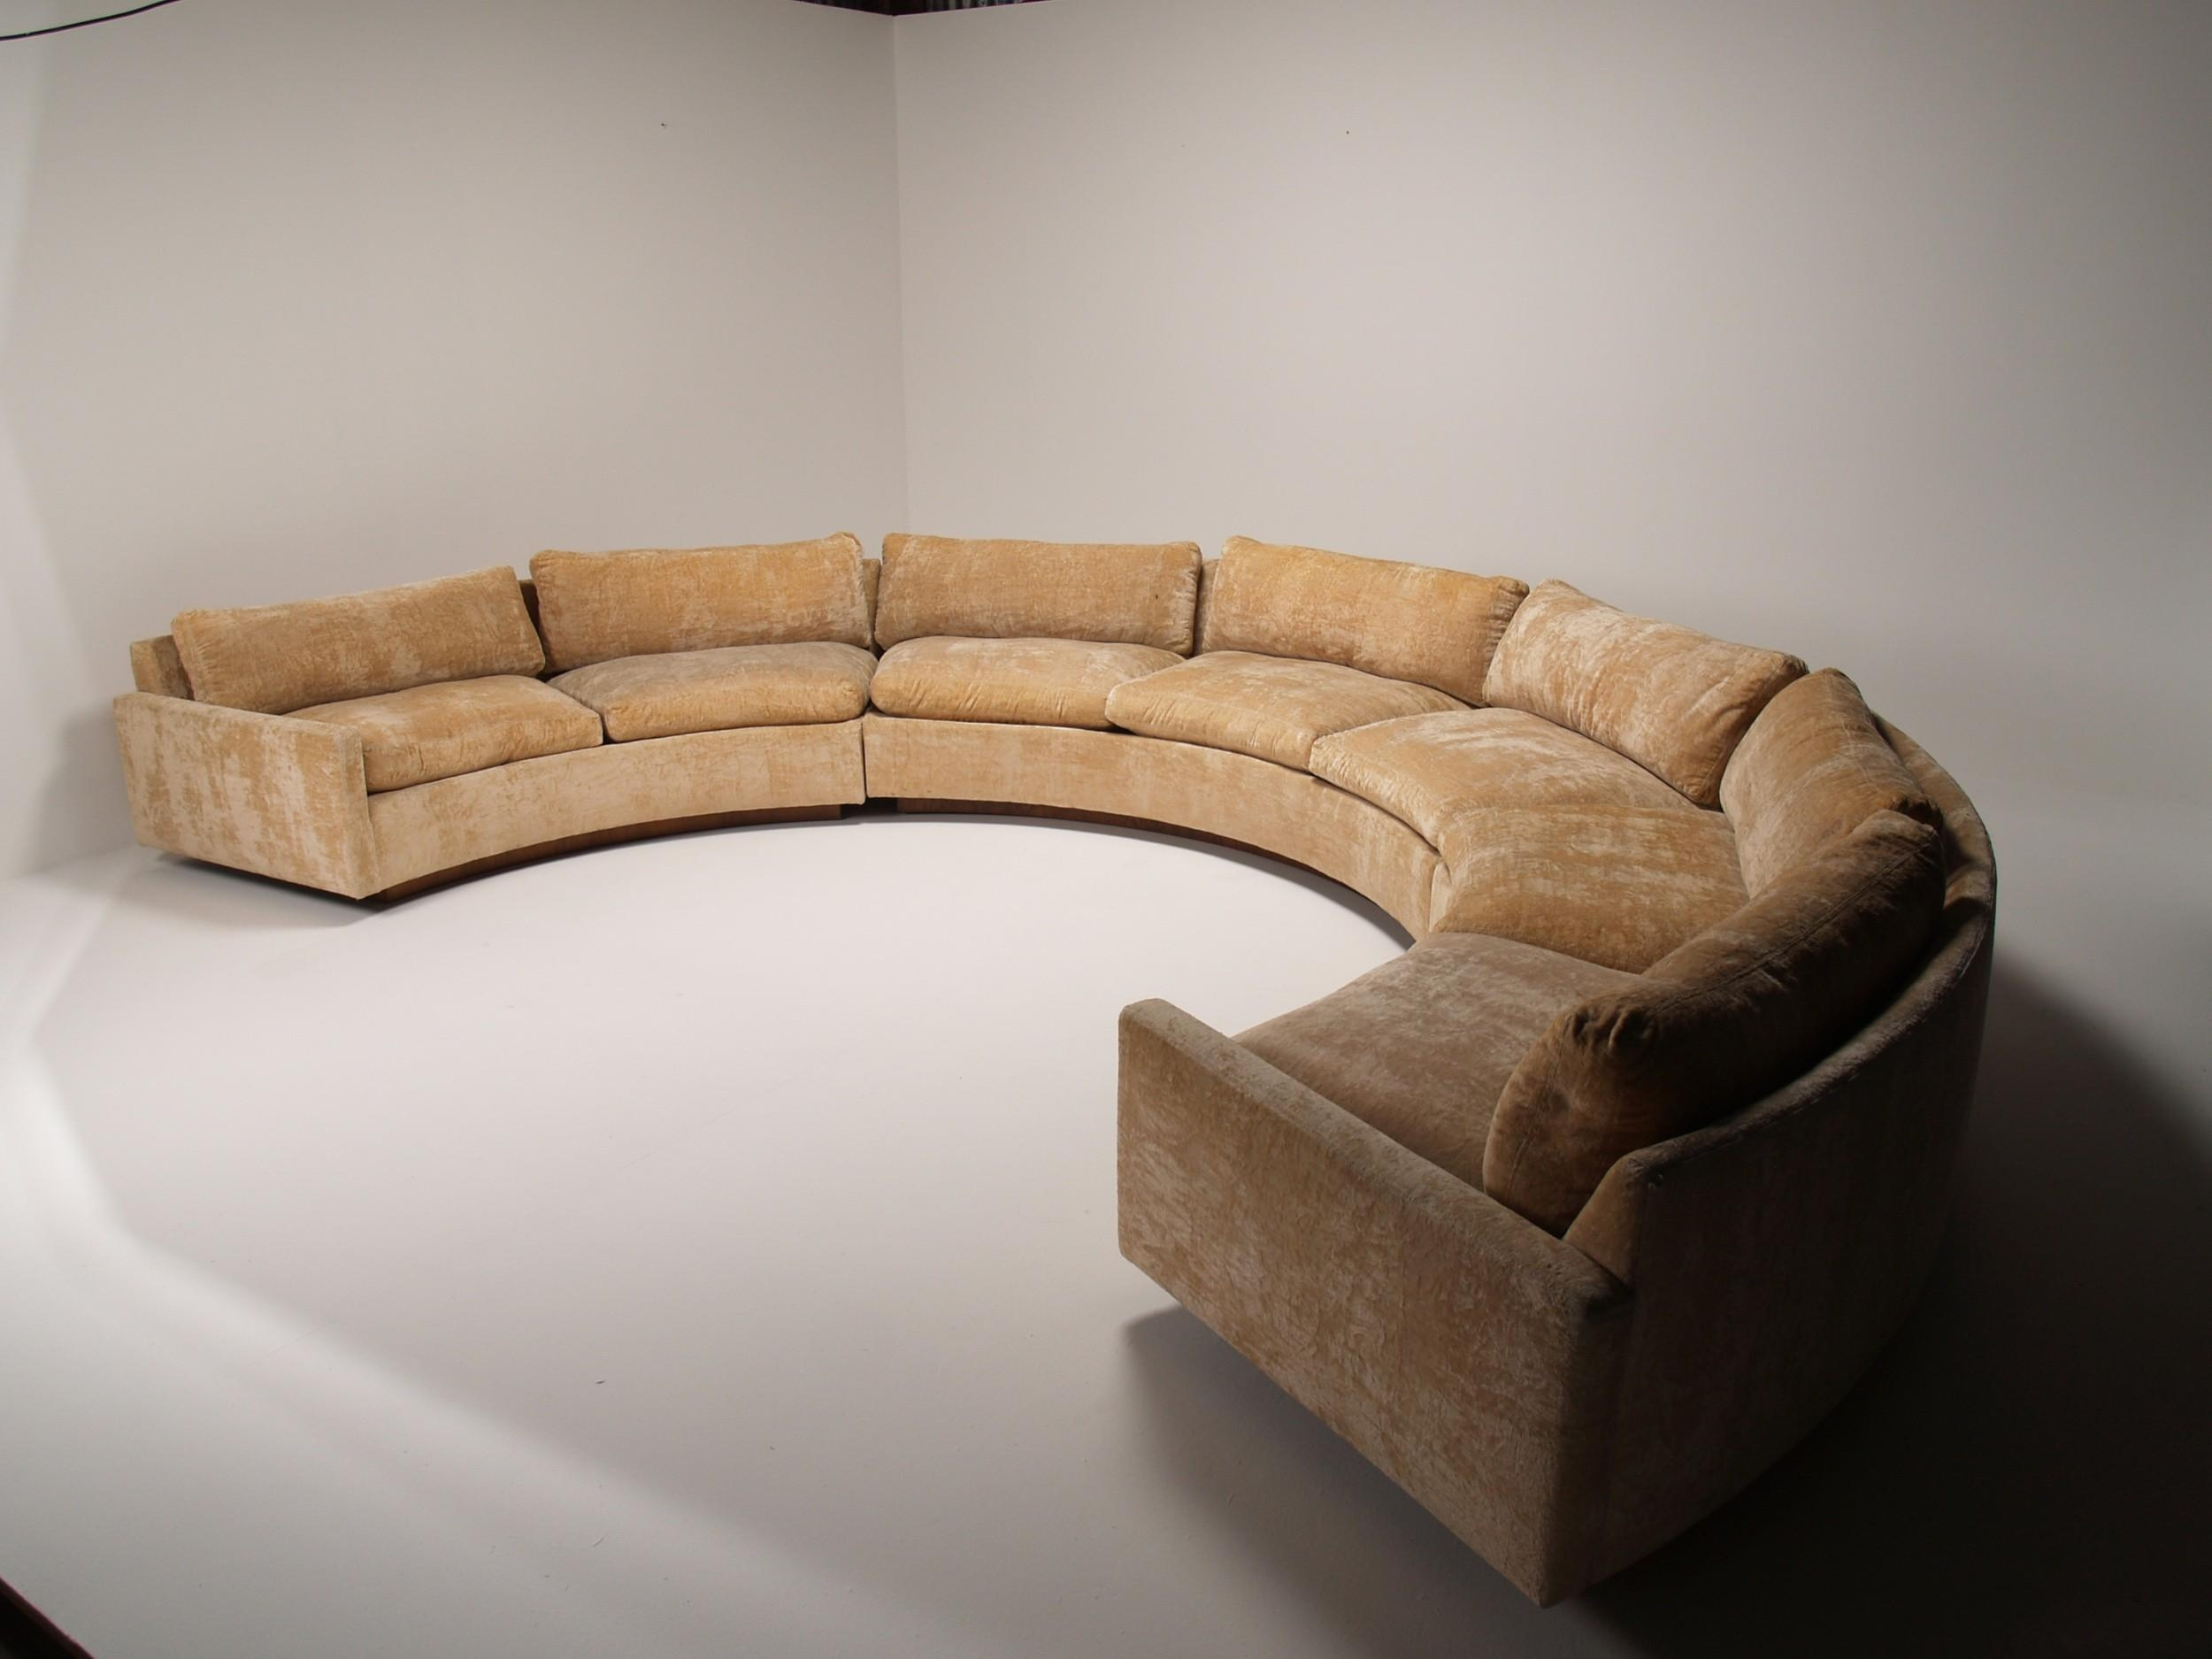 Furniture: Luxury Curved Sectional Sofa For Living Room Furniture For Rounded Sofa (Image 8 of 20)